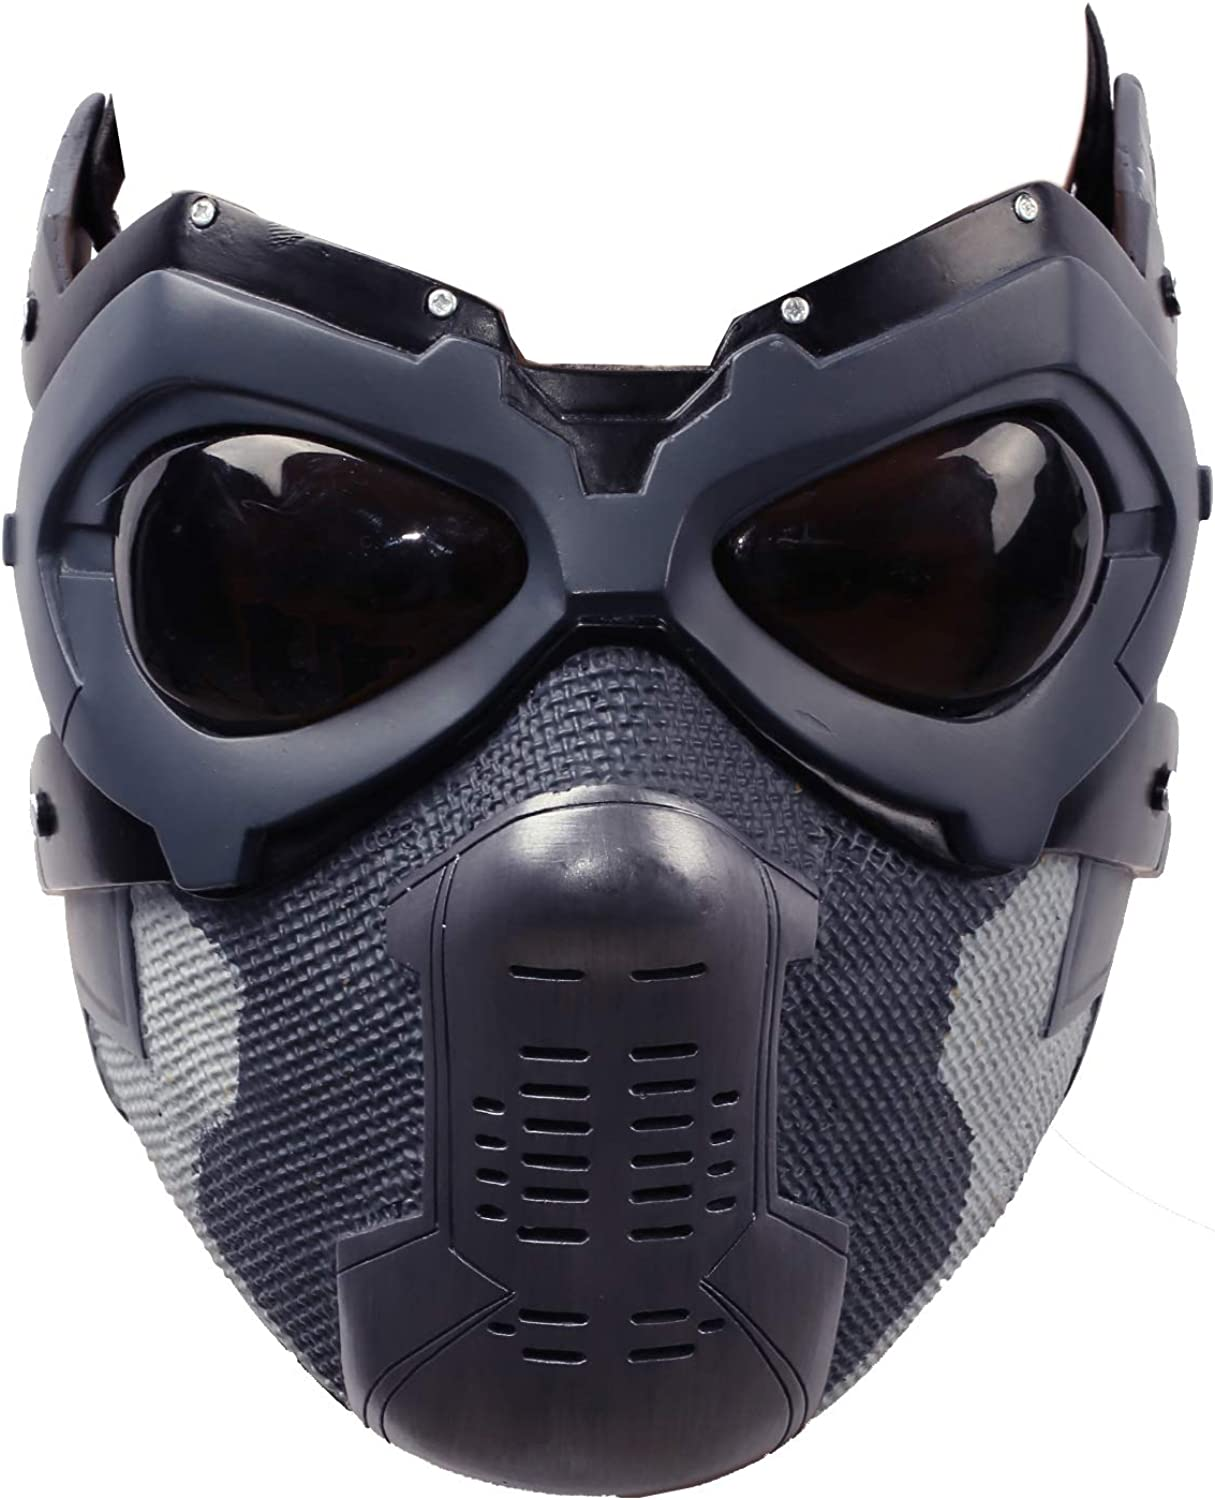 BUCKY BARNES MASK GOGGLES Winter SOLDIER Captain America costume ADULT props